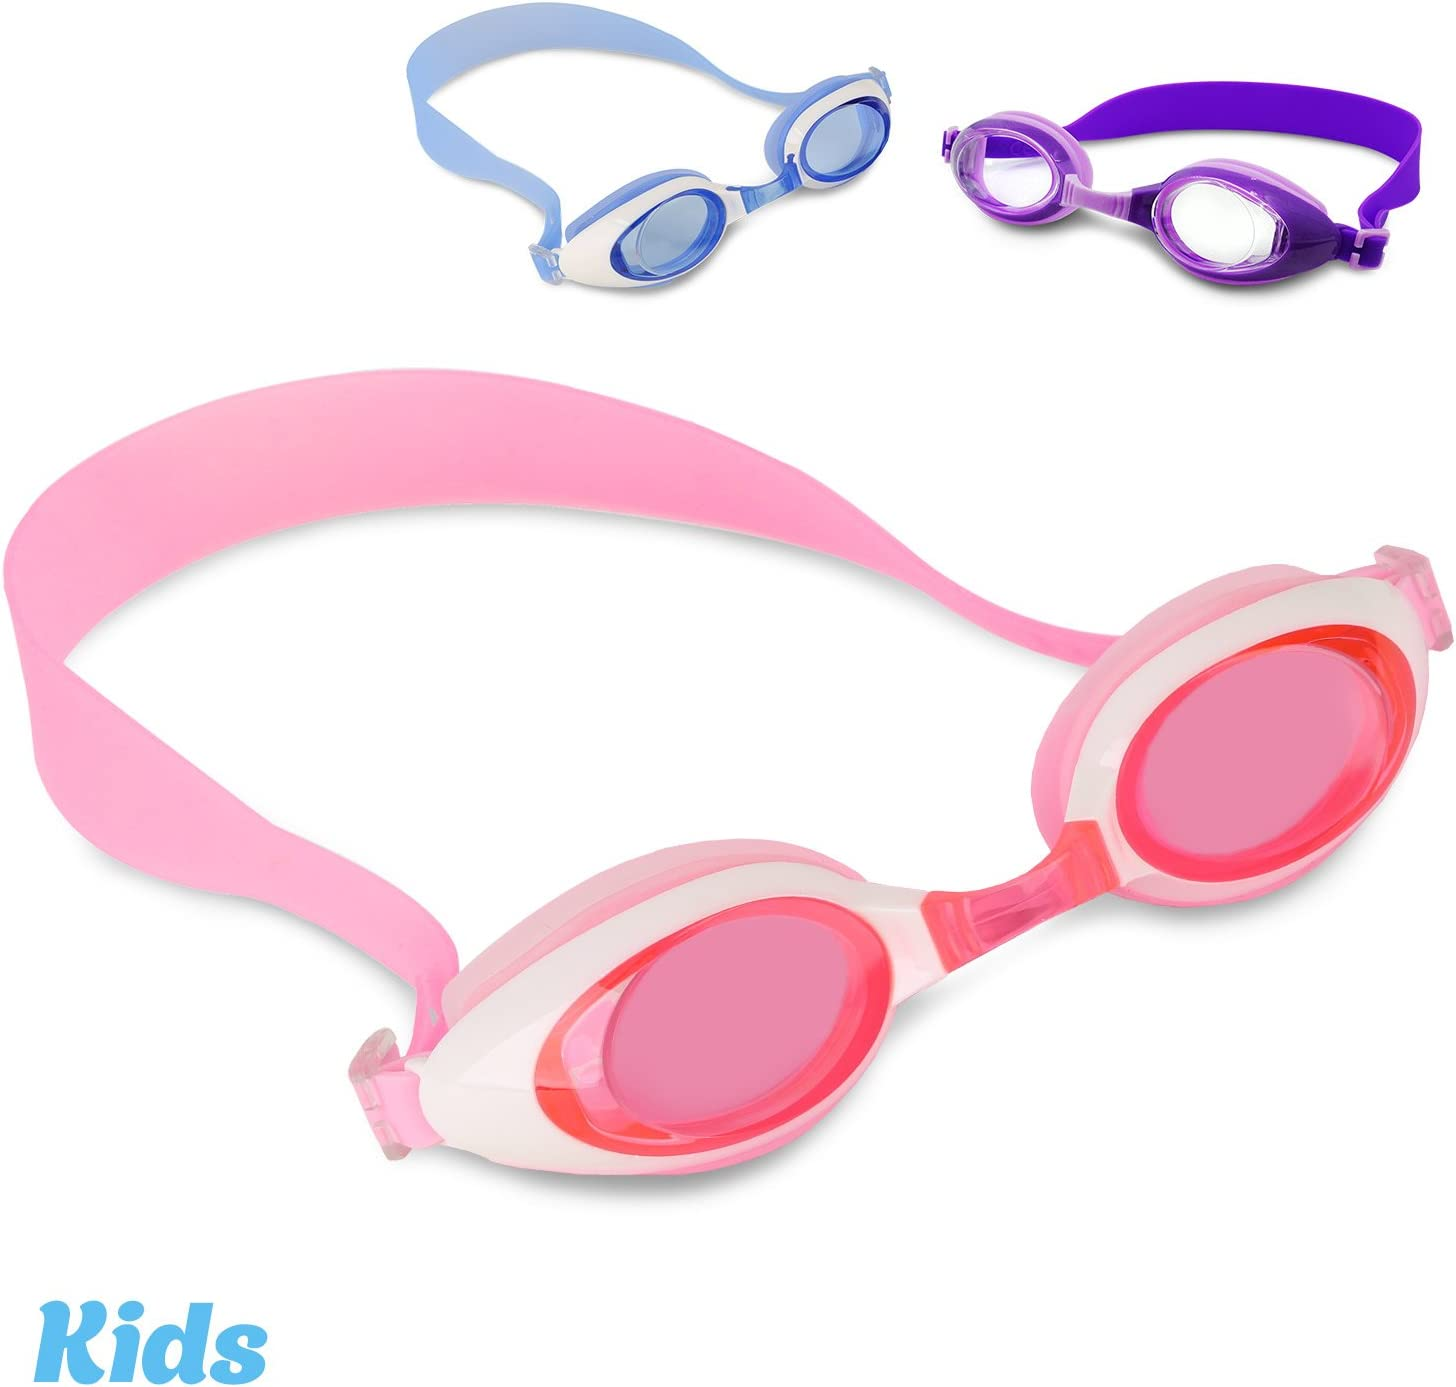 I Swim Pro Swimming Goggles